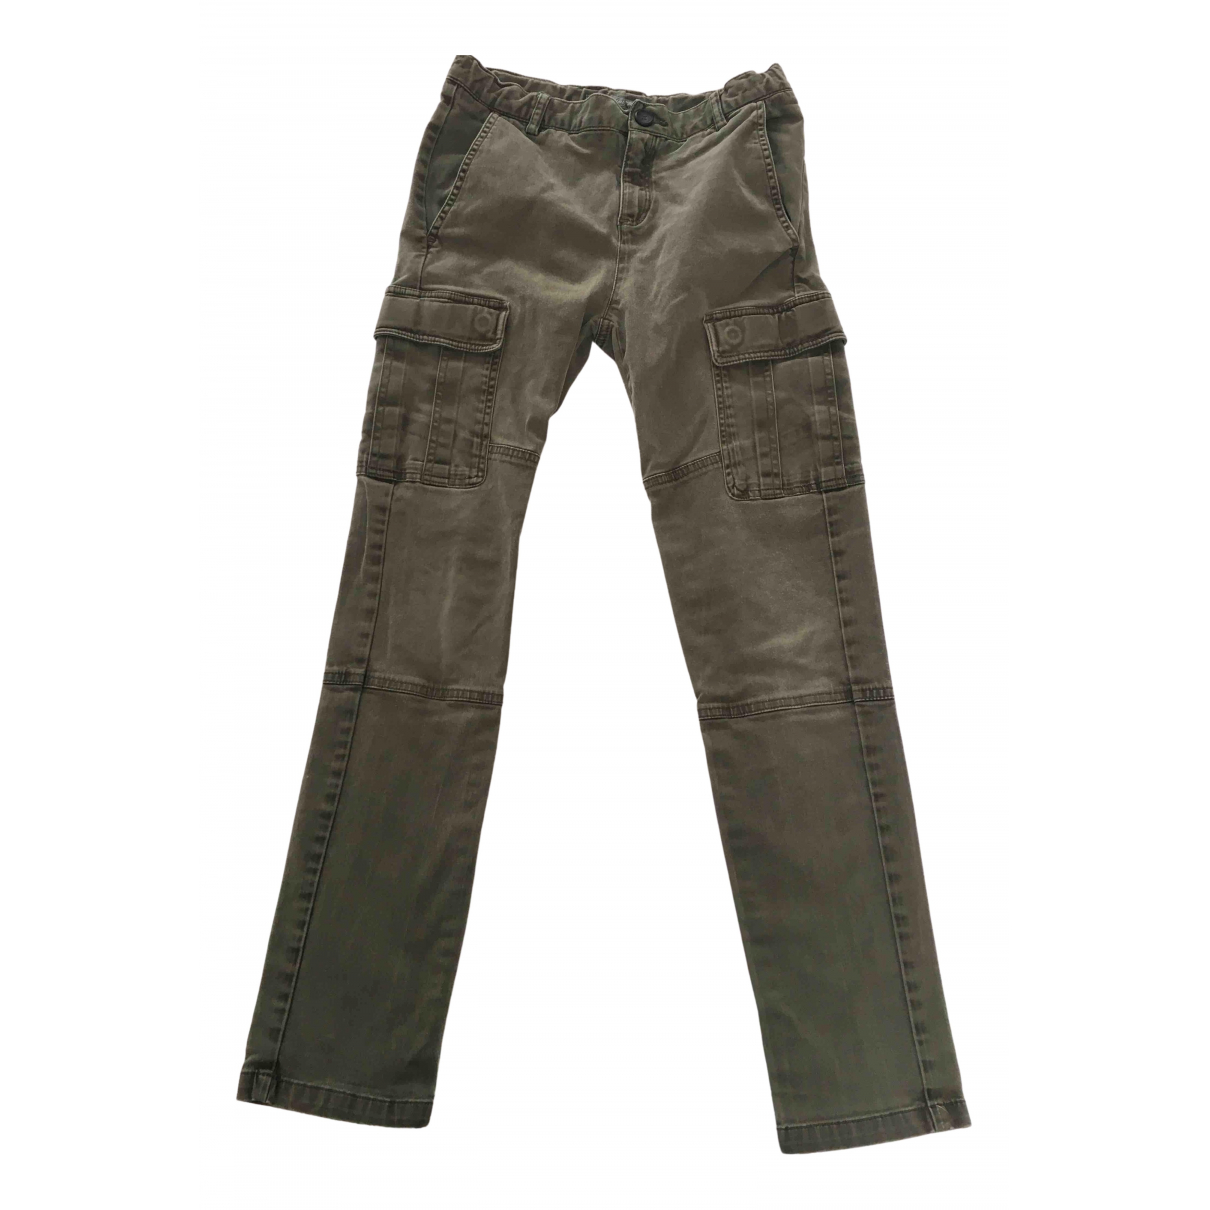 Bonpoint N Khaki Cotton Trousers for Kids 12 years - XS FR